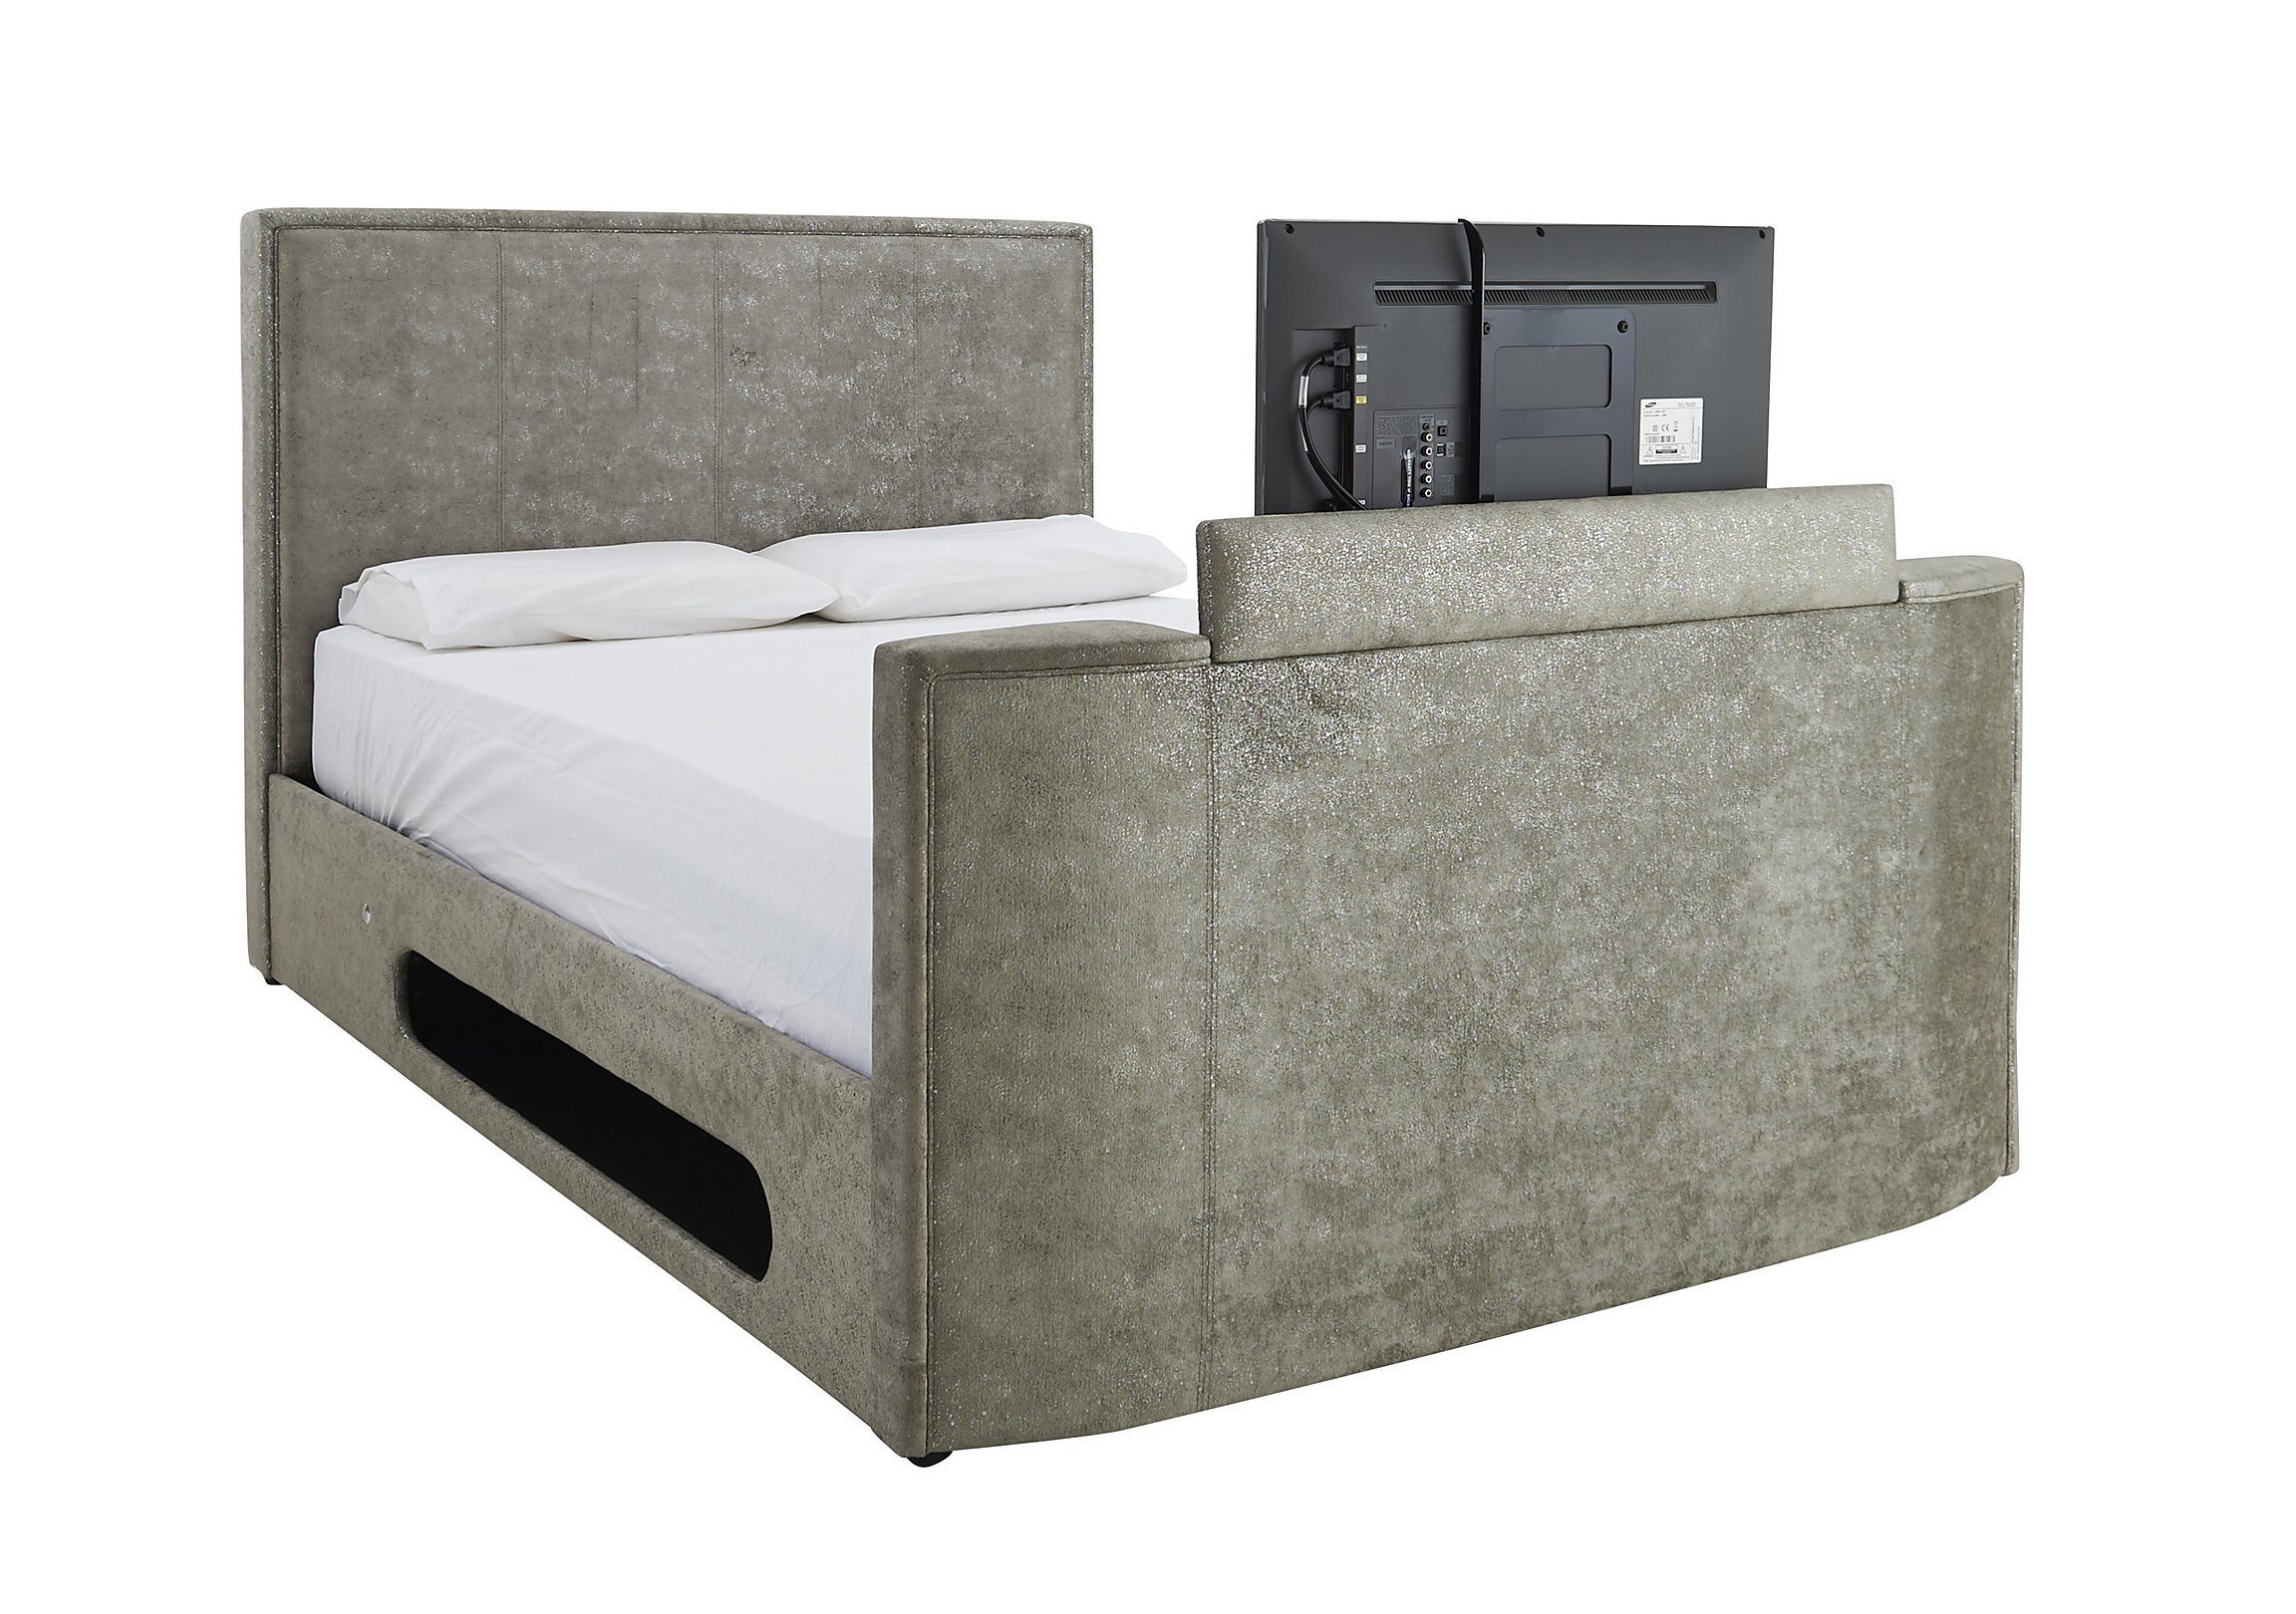 100 tv bed frames prado double leather bed